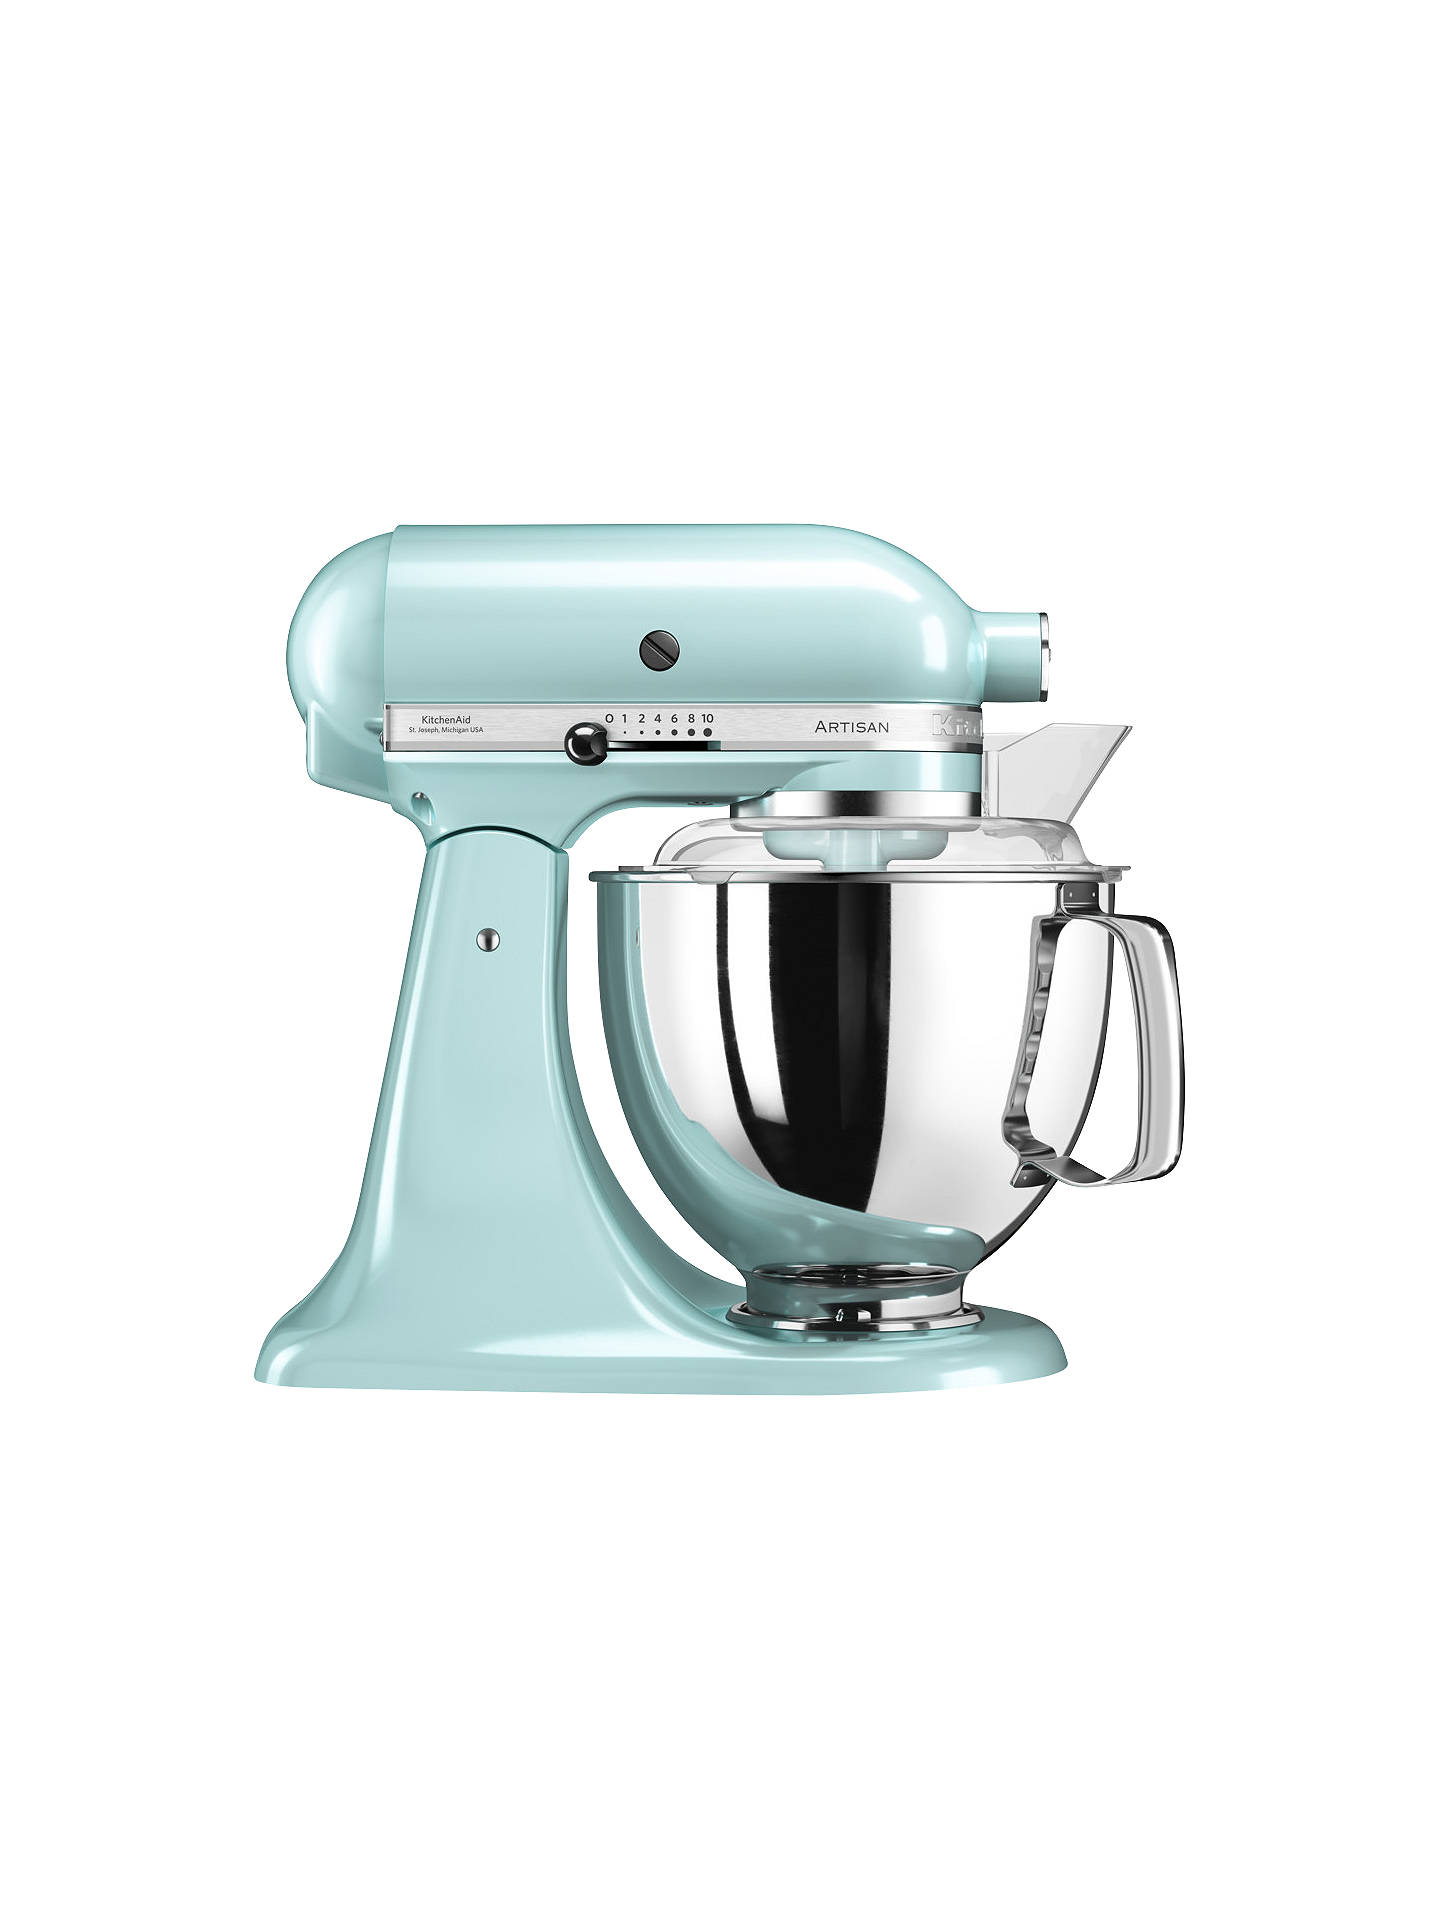 BuyKitchenAid 175 Artisan 4.8L Stand Mixer, Ice Blue Online at johnlewis.com